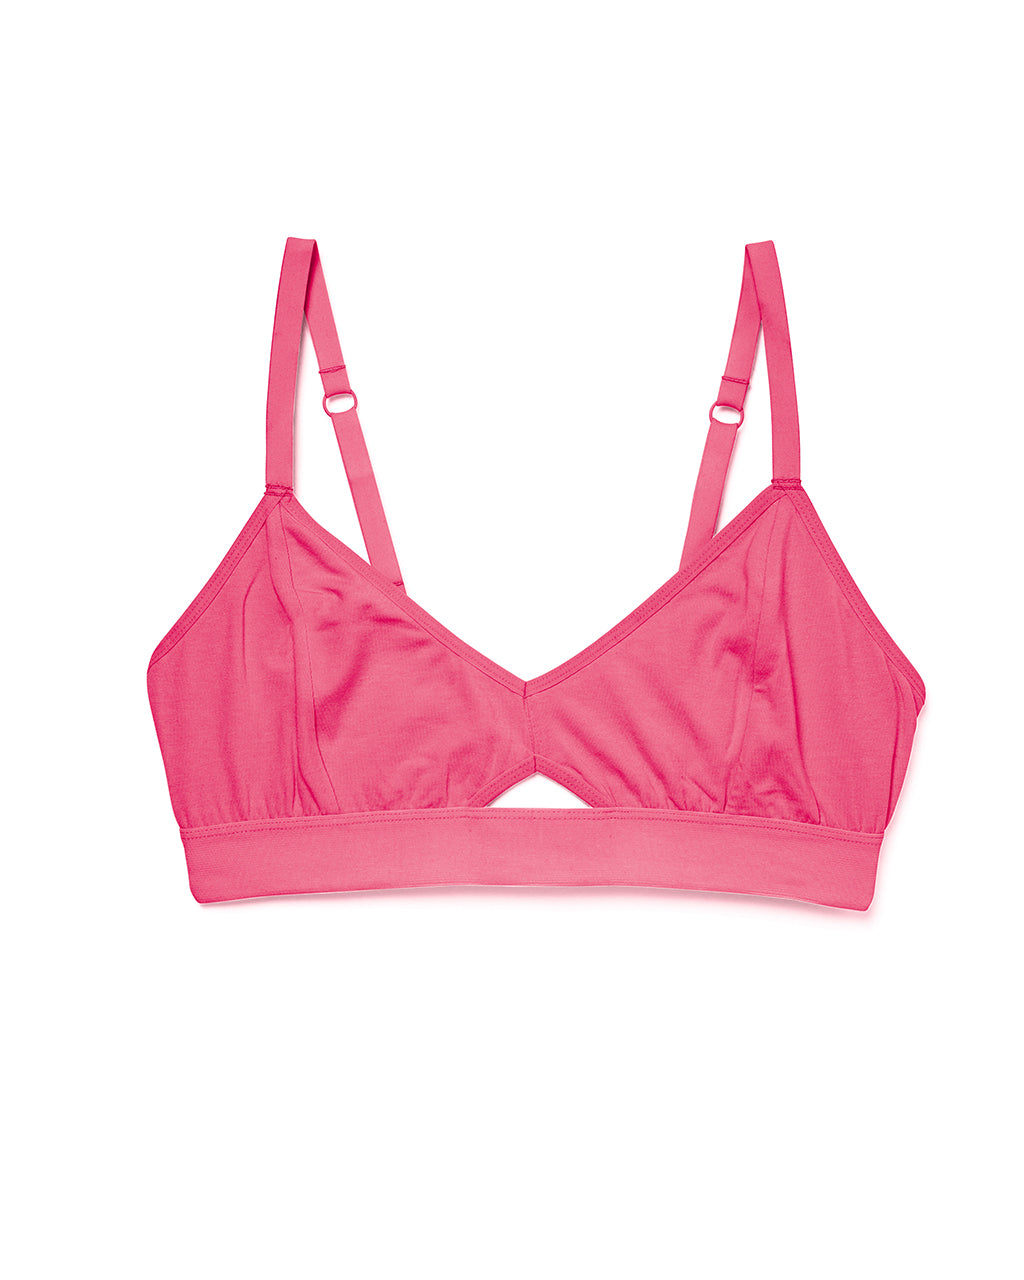 Cutout bralette in pink.